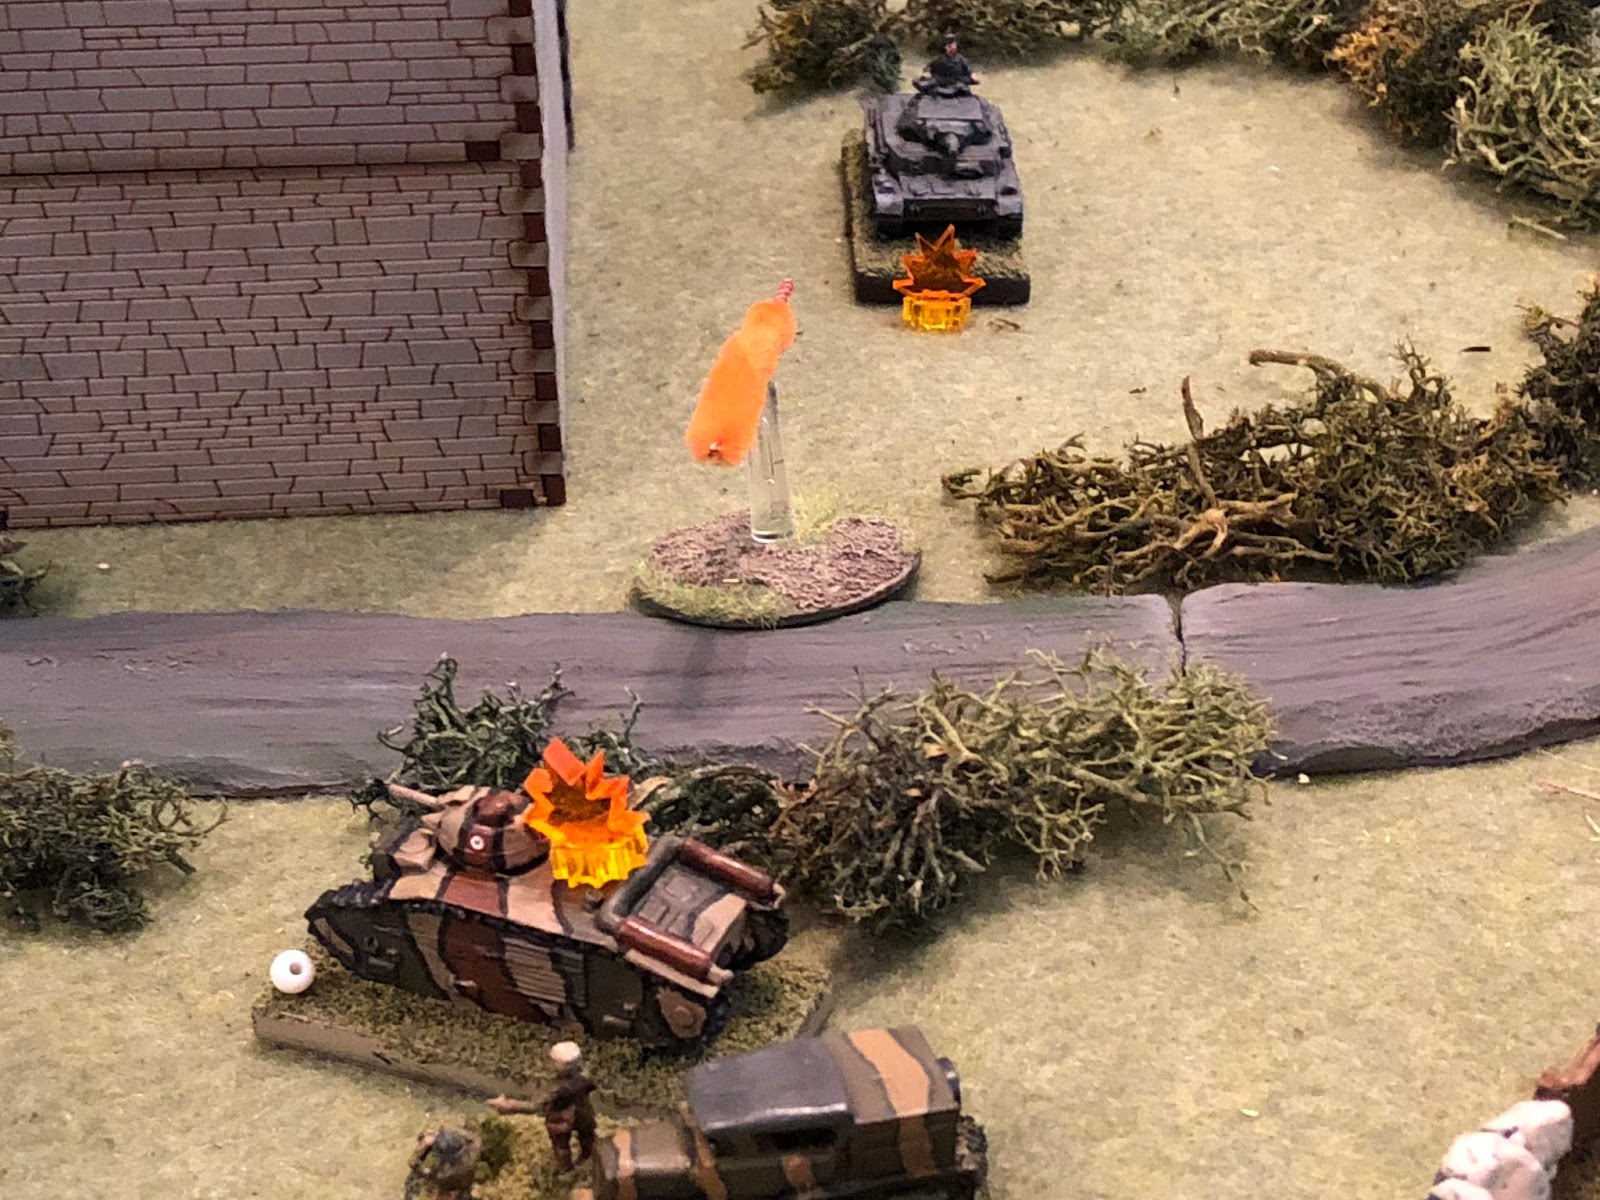 Sgt Guillaume ordered his gunner to return fire, and within seconds a 47mm round was slamming into SSgt Mangold's Pz IV...